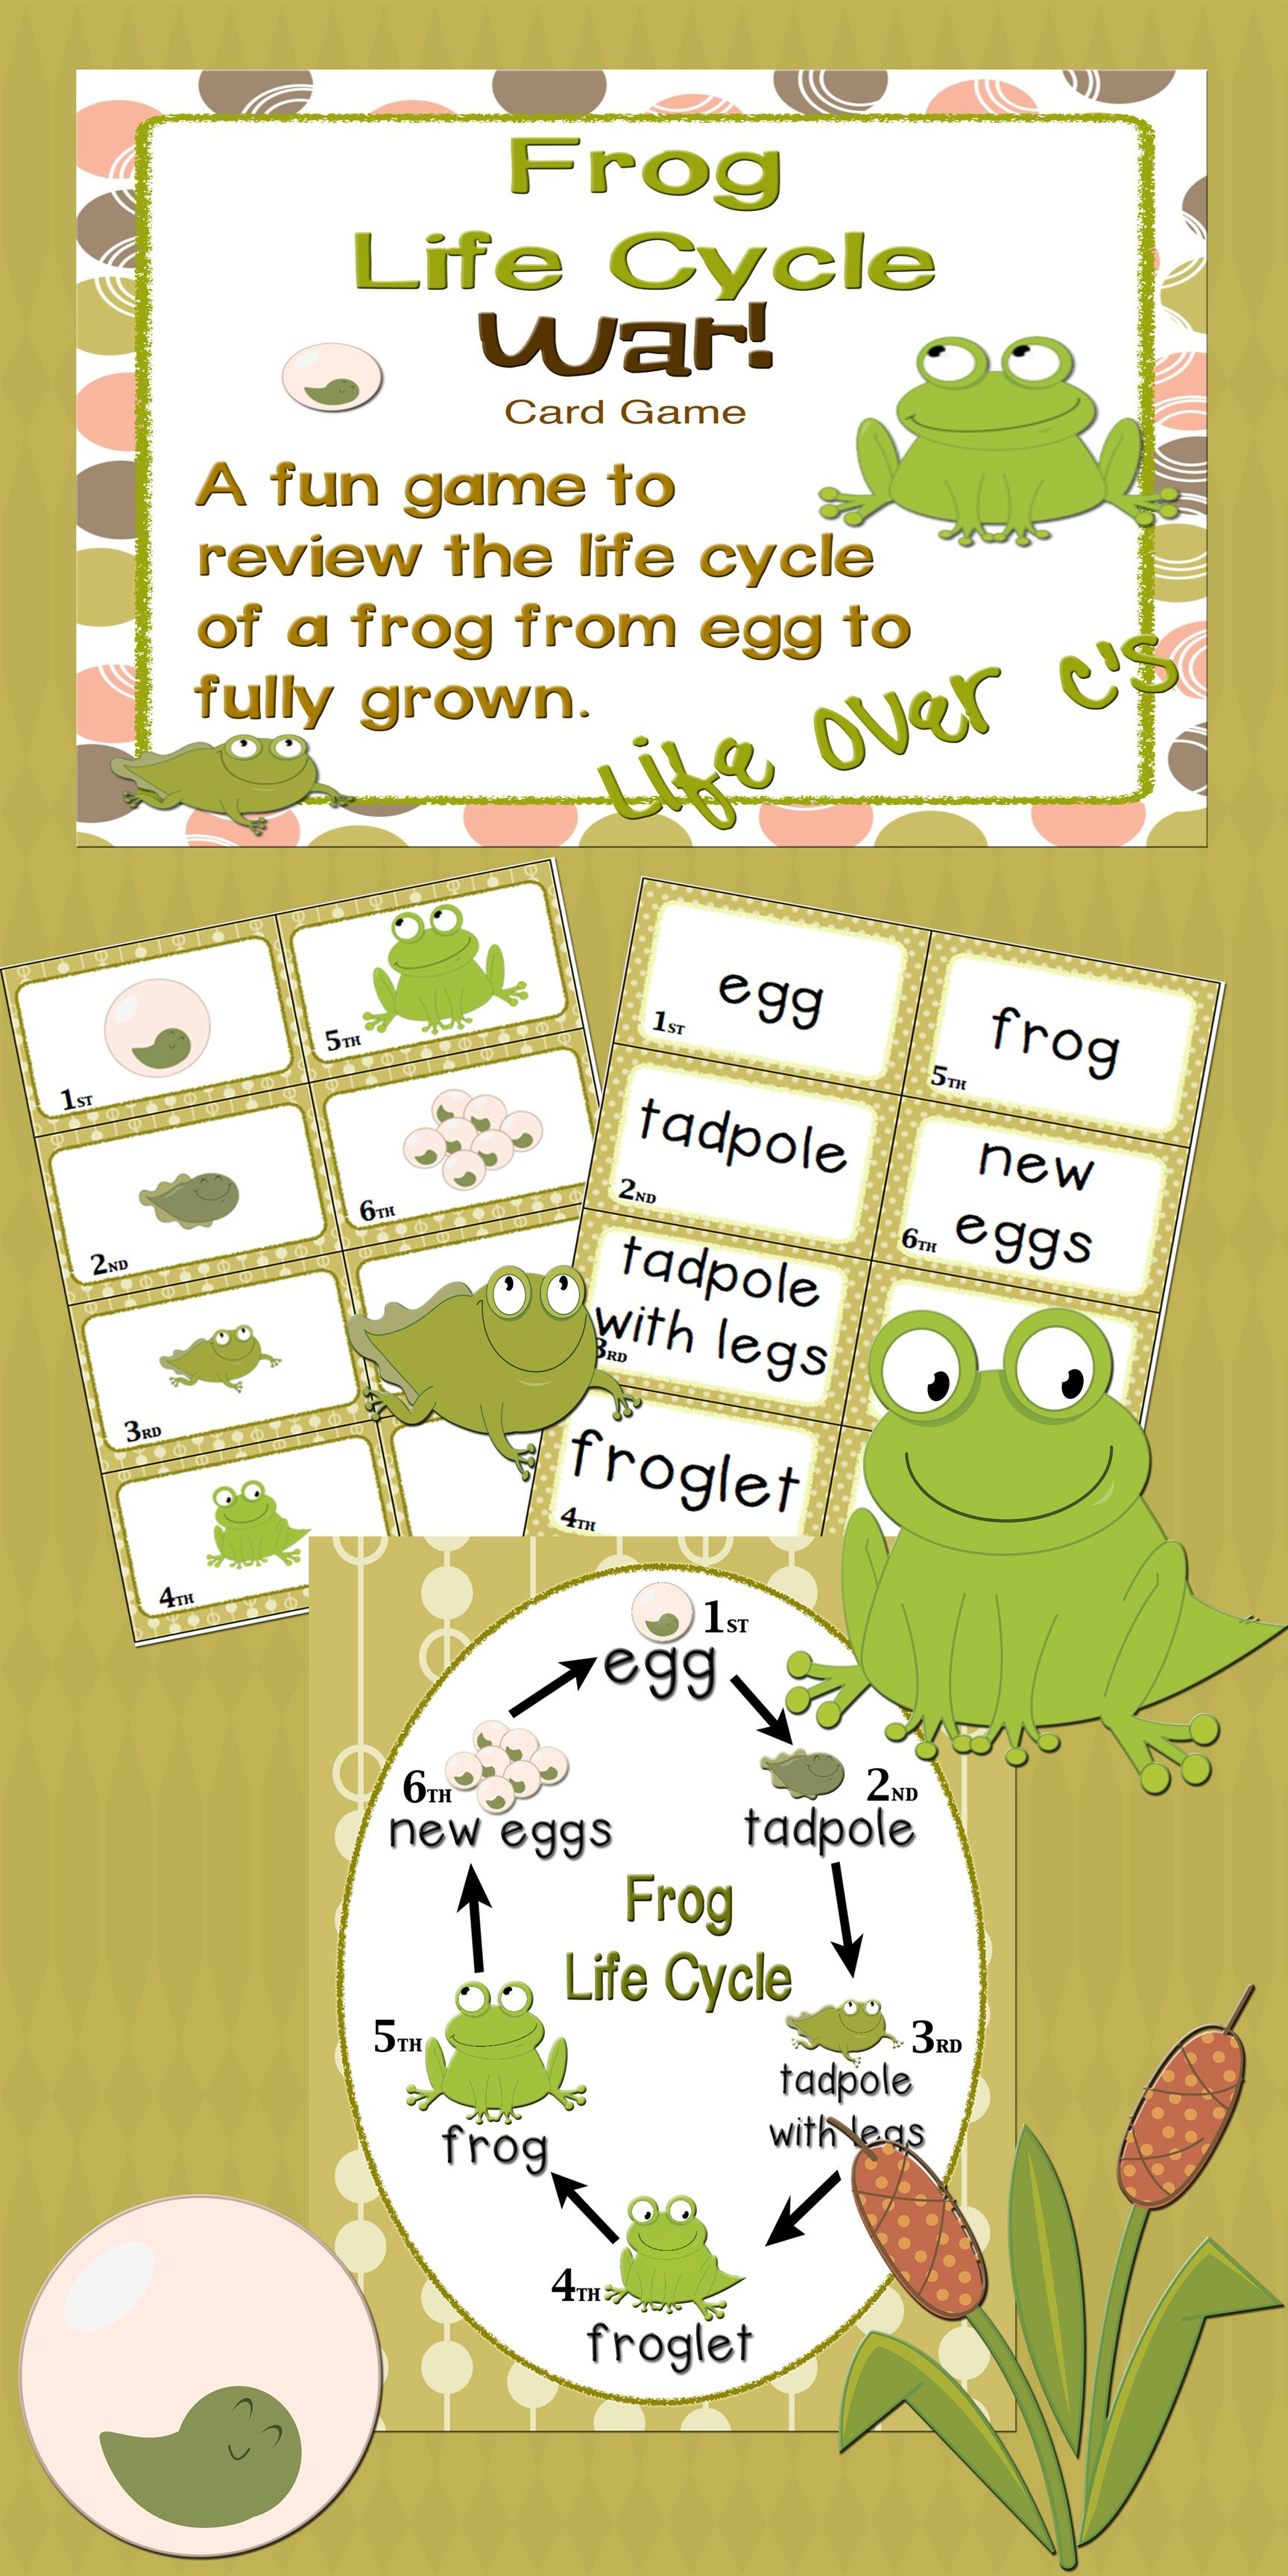 Sequencing With Frog Life Cycle War Card Game Science Center